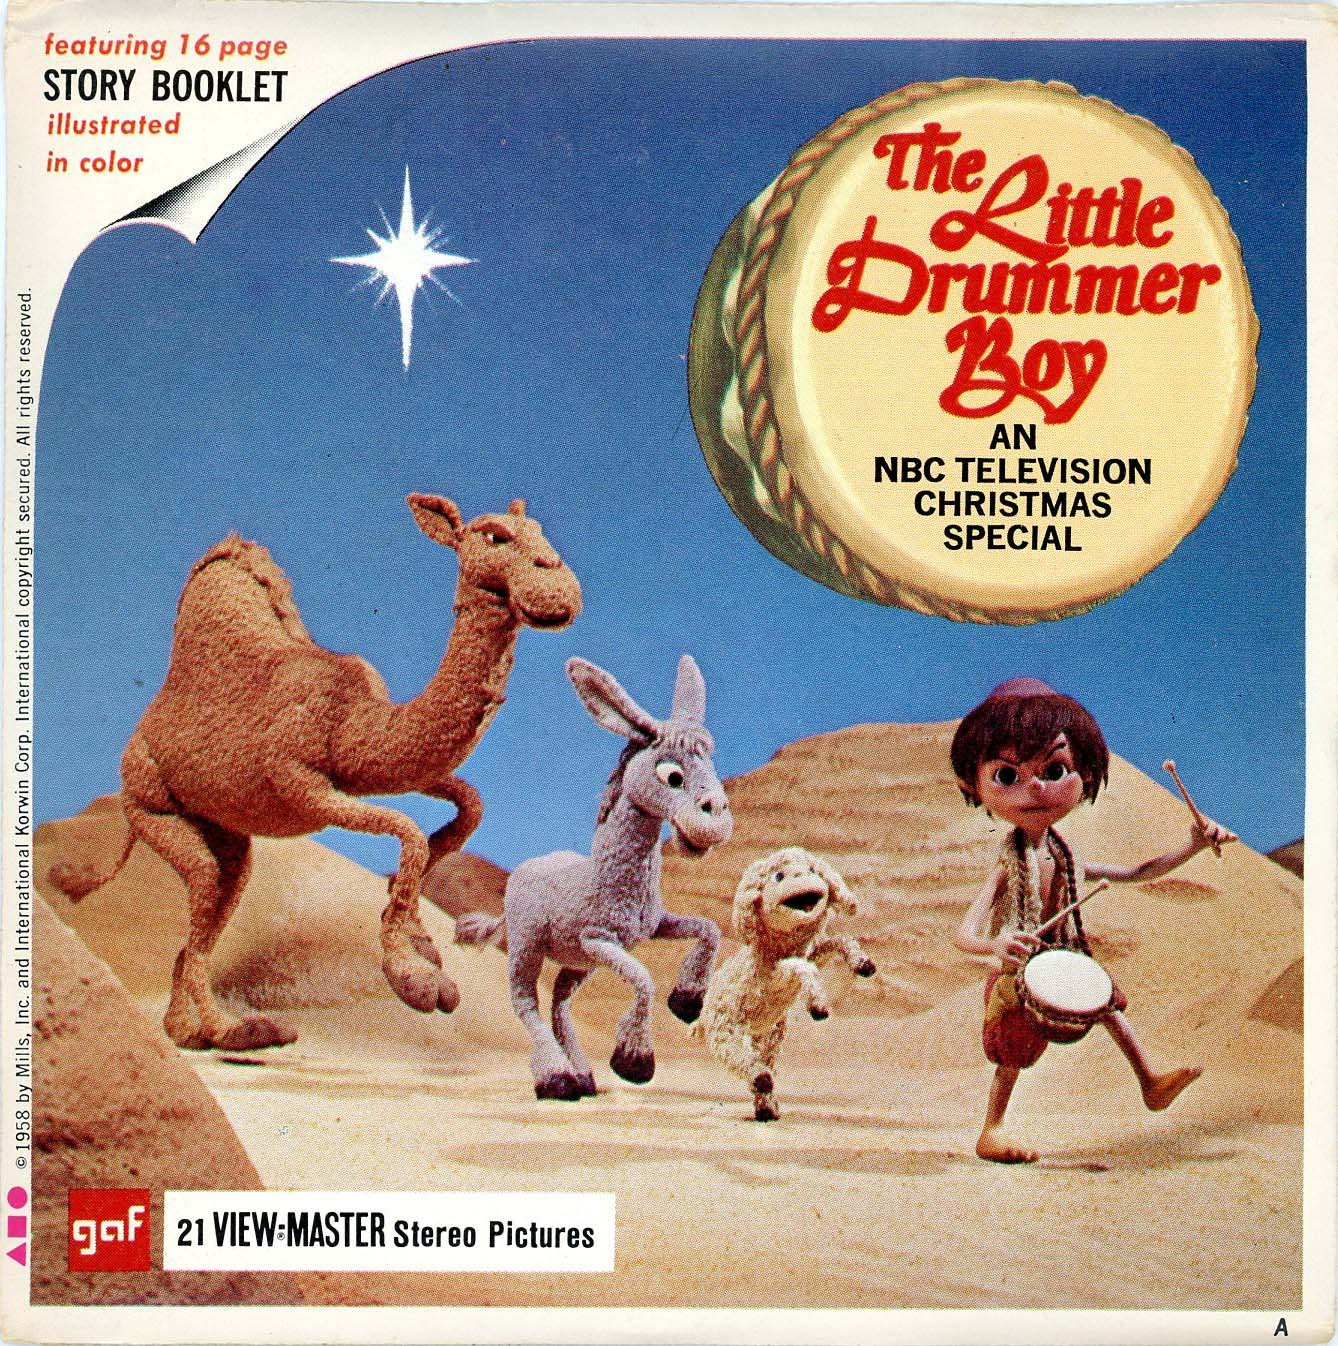 Classic ViewMaster - The Little Drummer Boy - an NBC Television Christmas Special - Unsold store stock - never opened by 3Dstereo ViewMaster (Image #1)